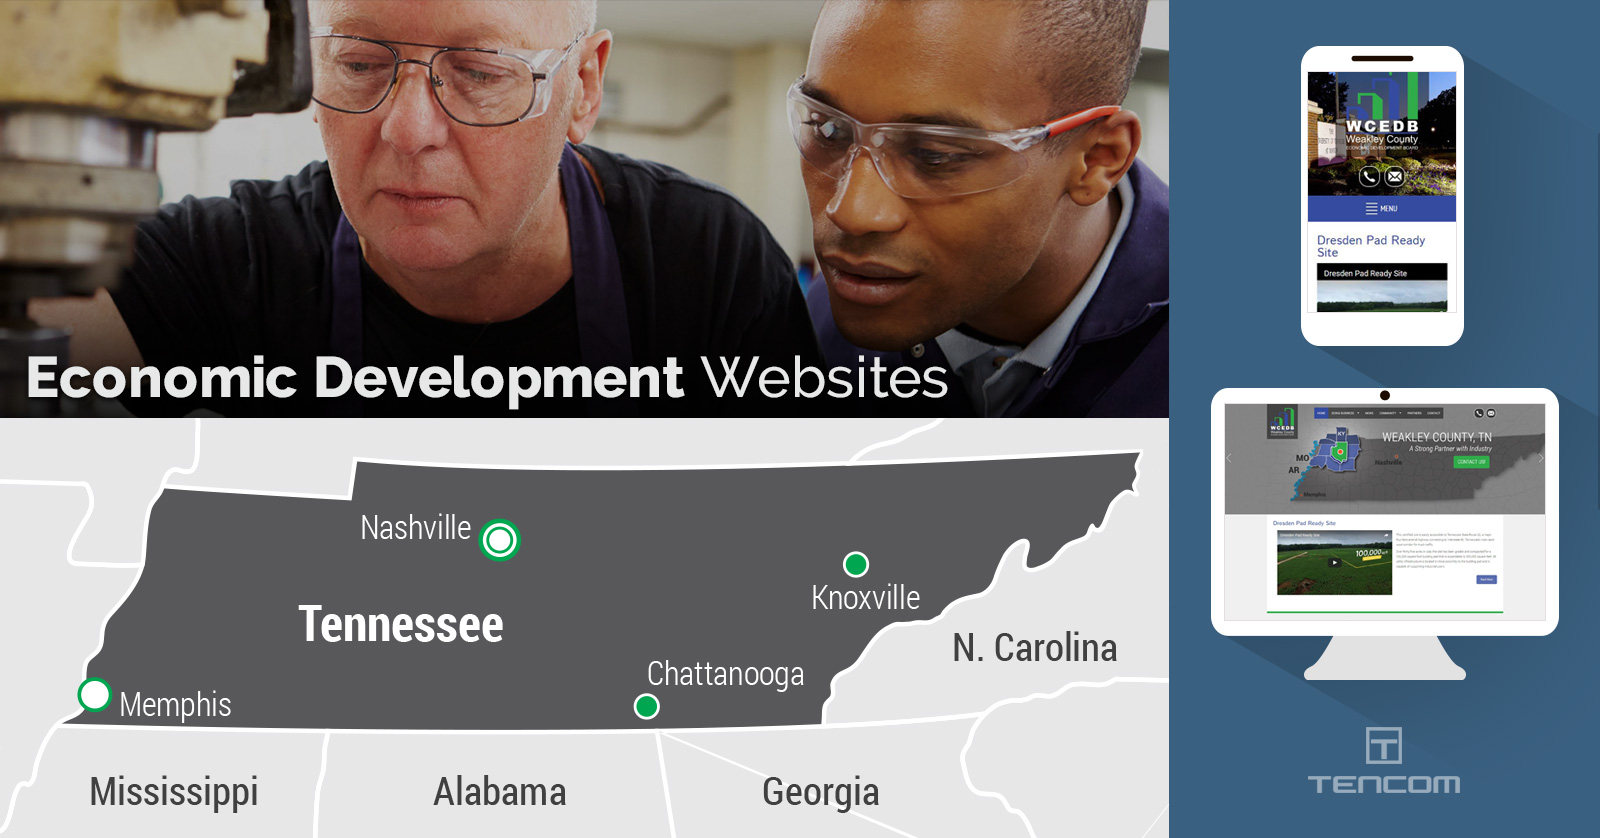 Economic Development Websites